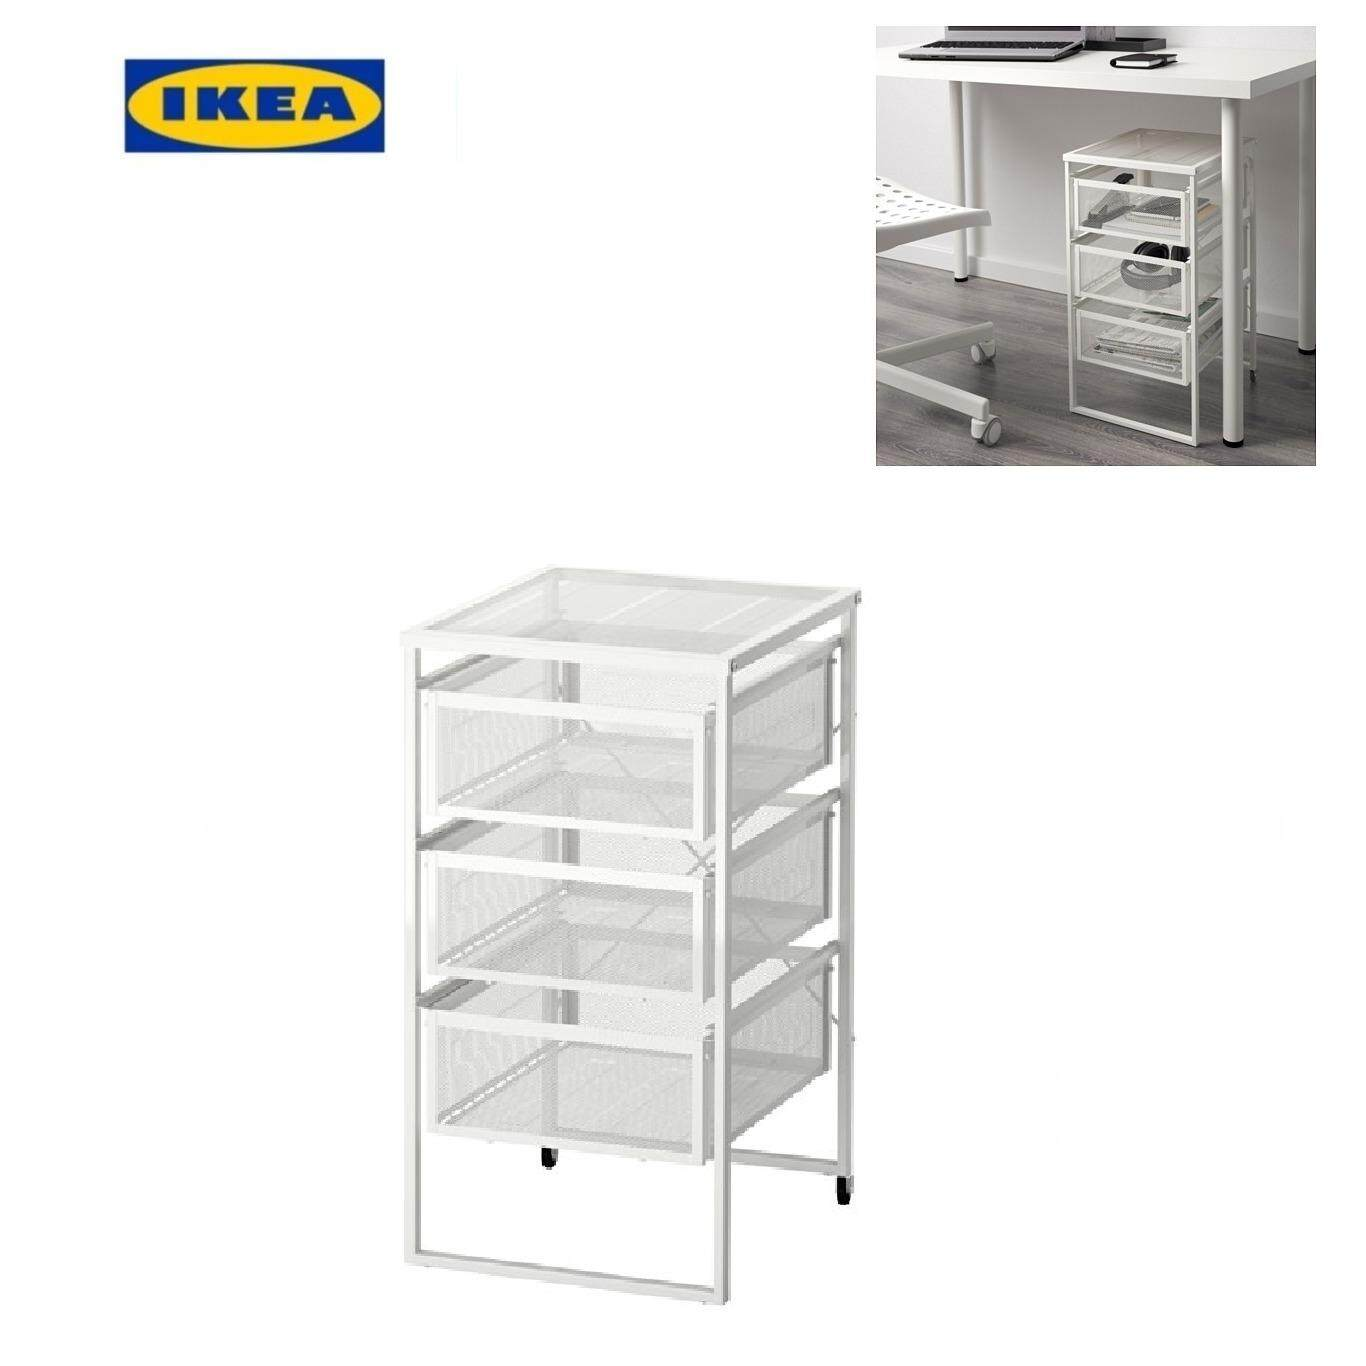 Ikea Vesken Cek Harga Ikea Vesken 2 Tier Bathroom Shelf Unit Multi Function